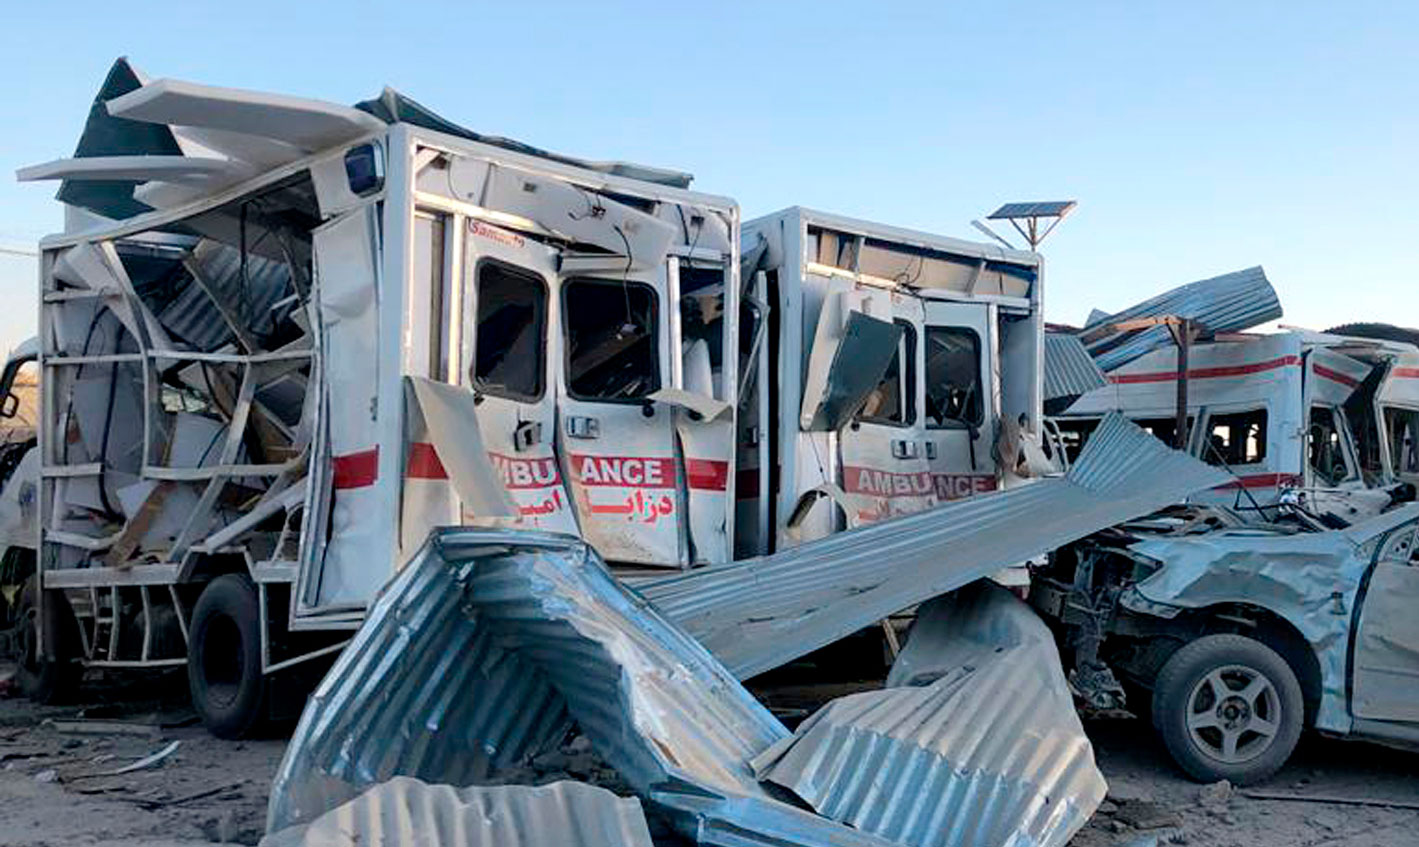 The mangled remains of an ambulance lie at the site of the Taliban truck bomb near a hospital in Qalat, Afghanistan, on Thursday.